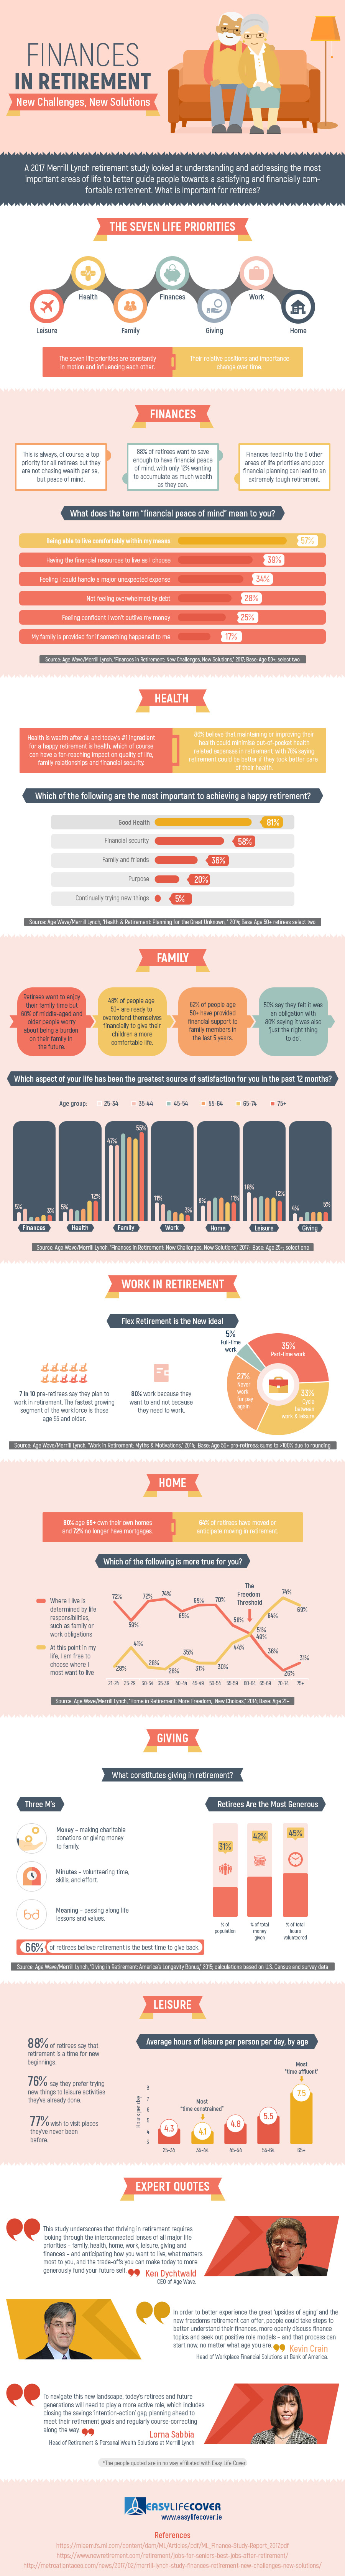 Finances in Retirement - New Challenges, New Solutions Infographic